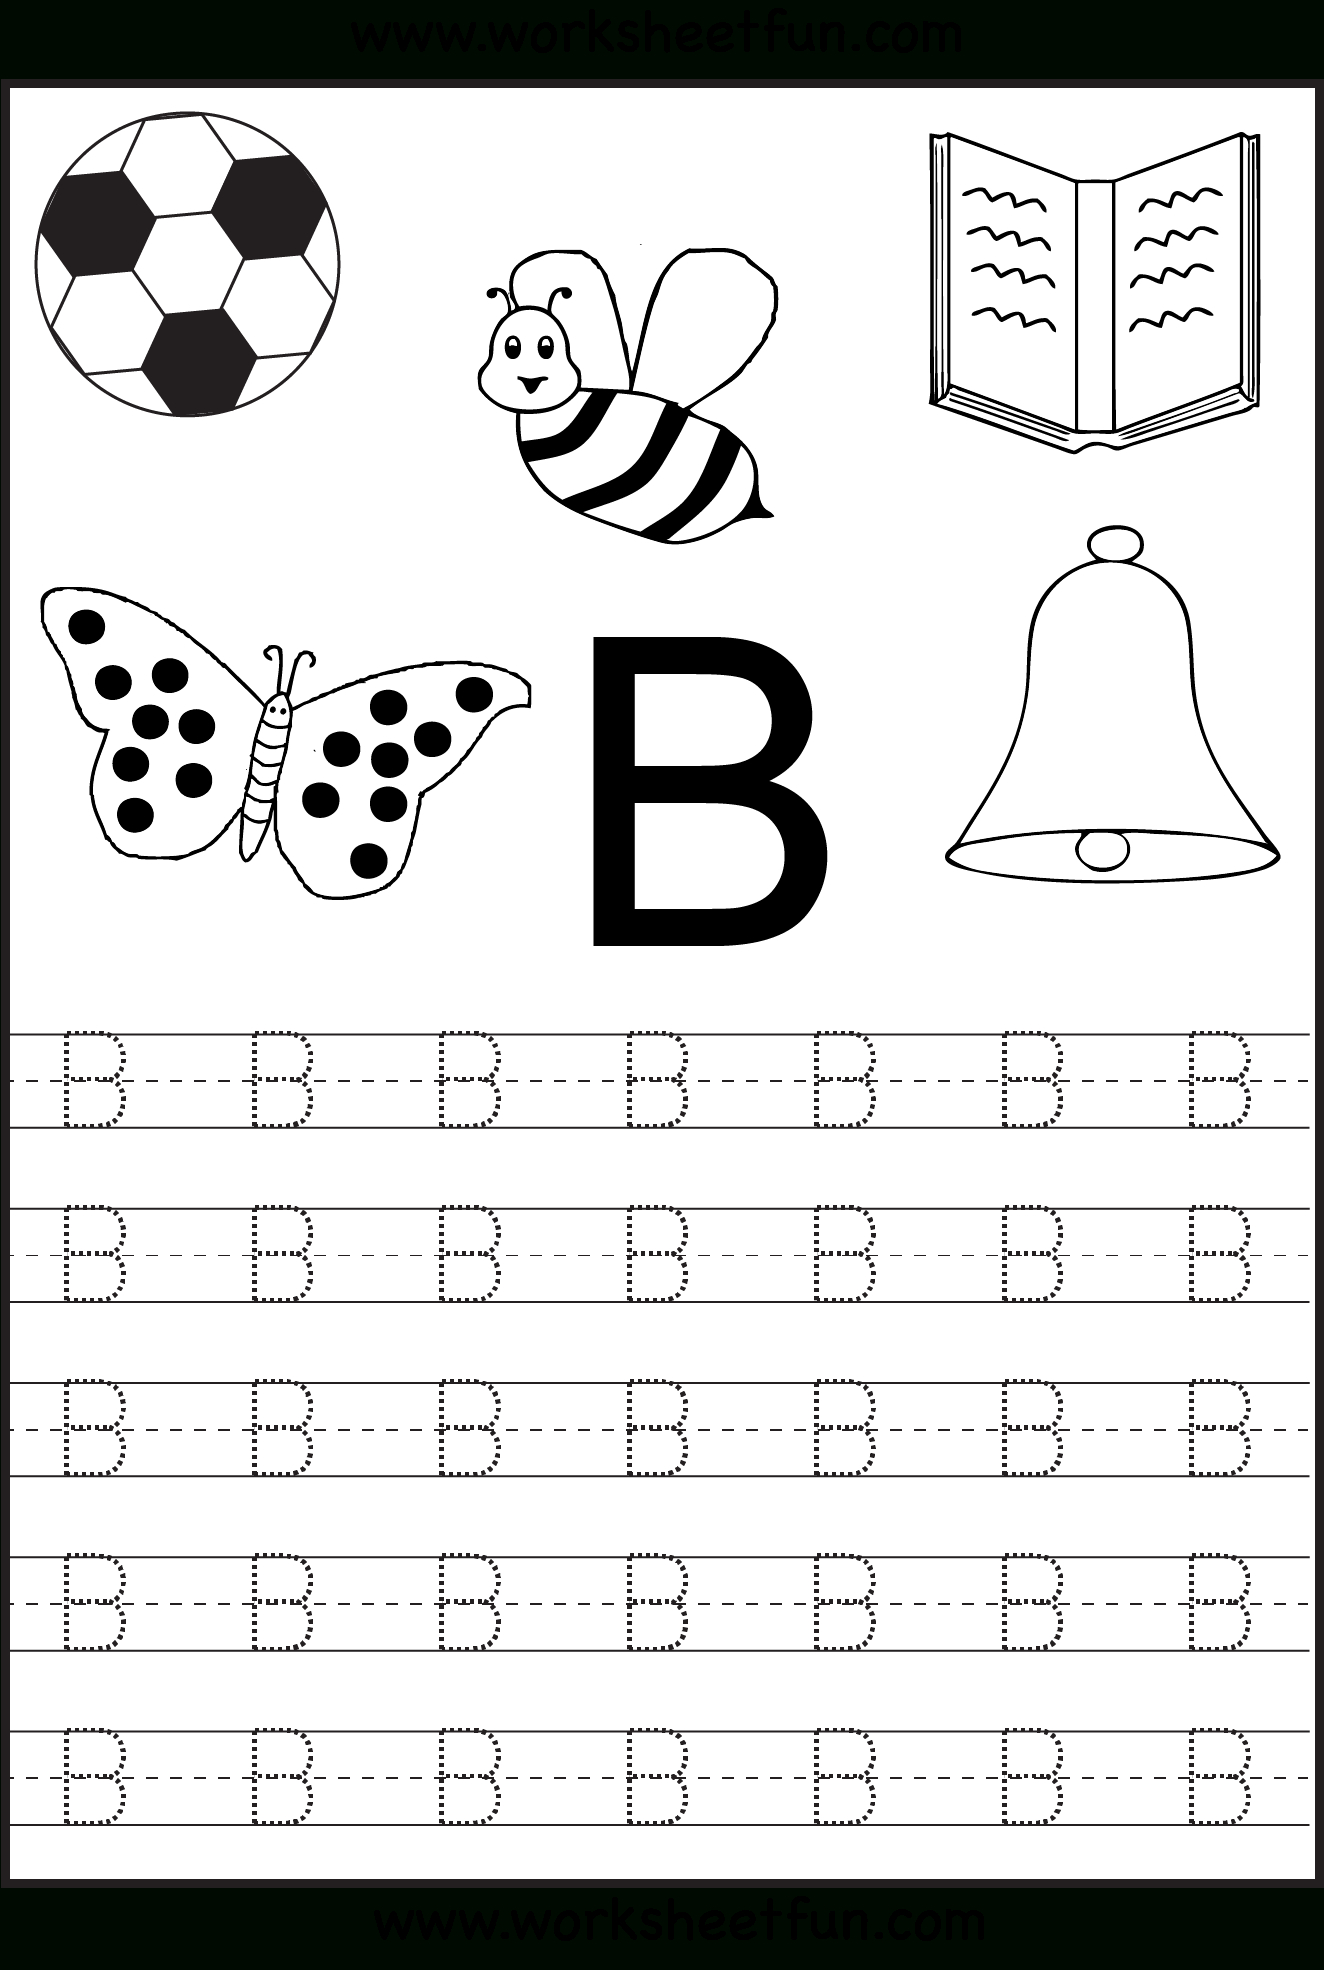 Free Printable Letter Tracing Worksheets For Kindergarten inside Preschool Tracing Letters Worksheets Free